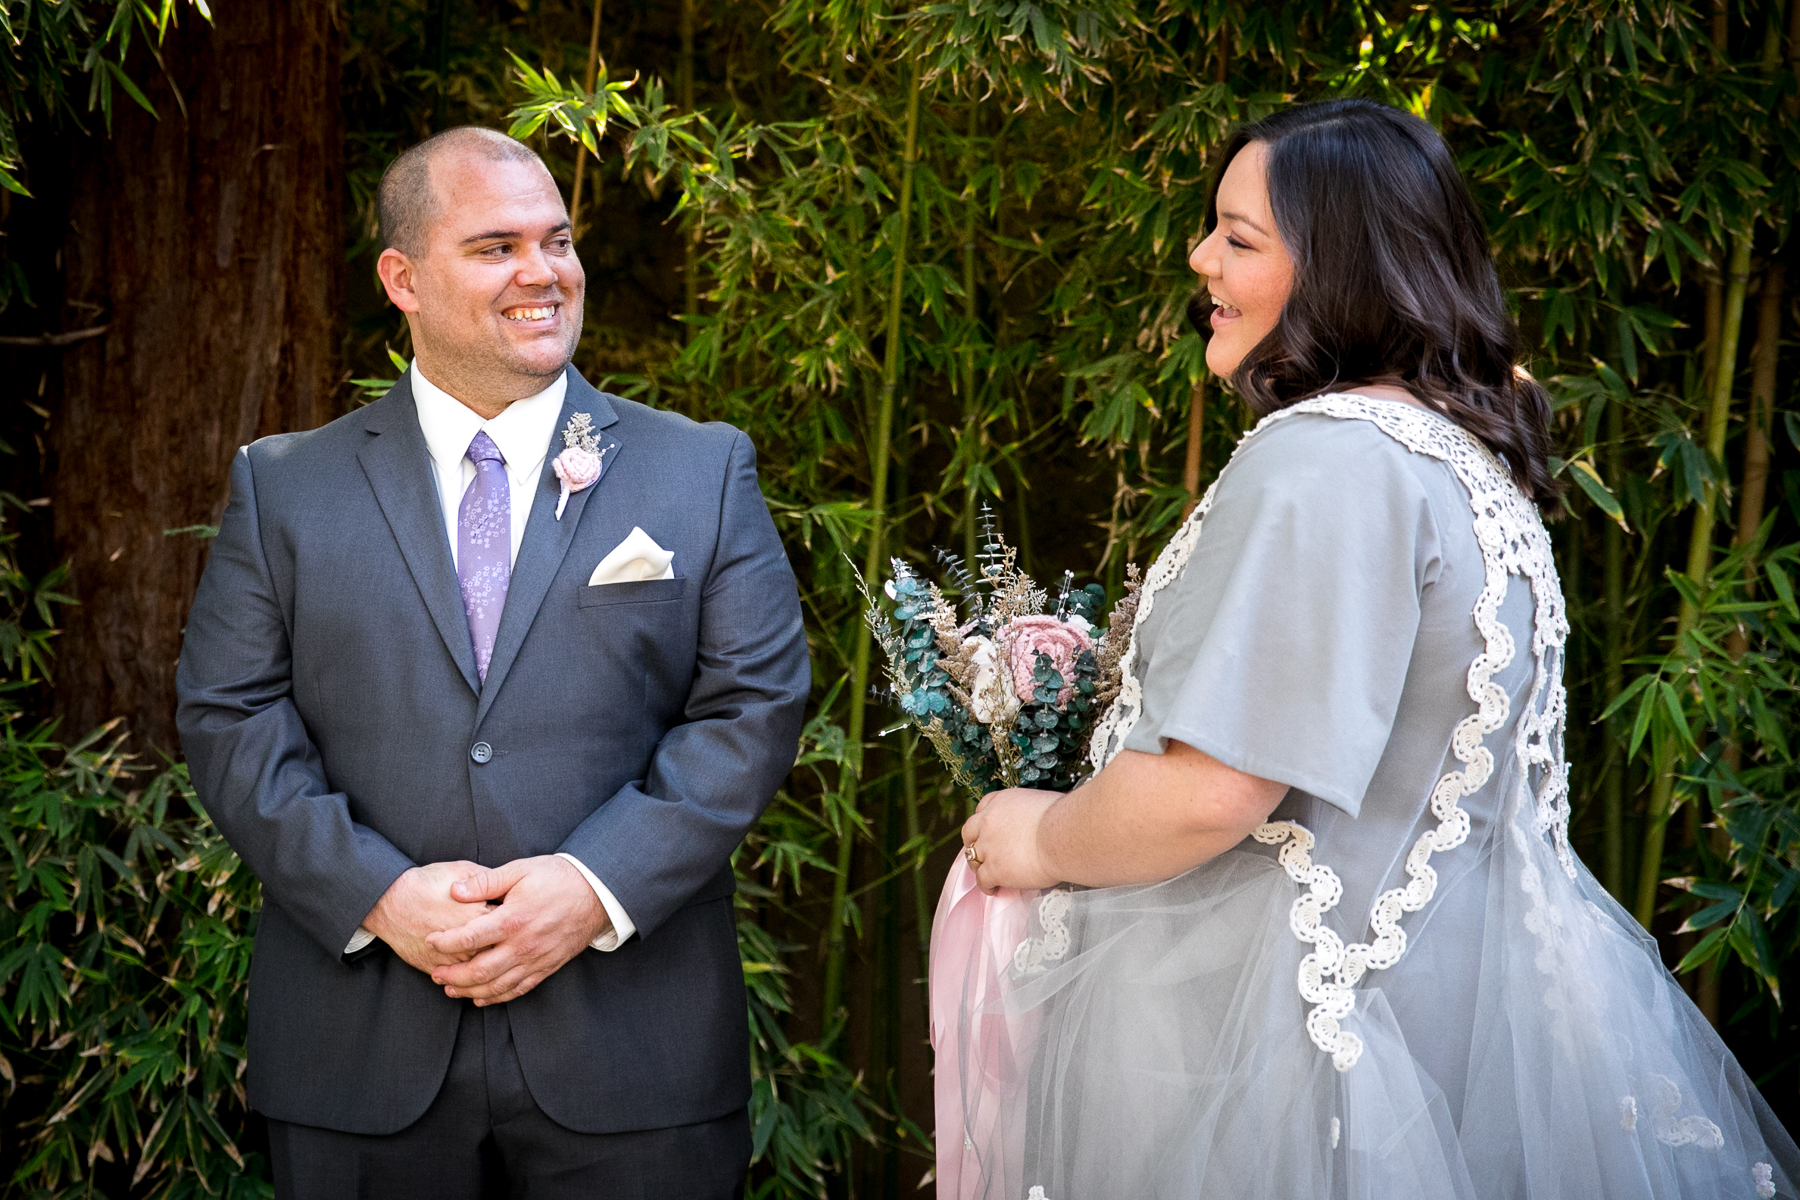 groom all smiles after seeing bride for first time in her wedding dress during first look at storrier stearns wedding photographer